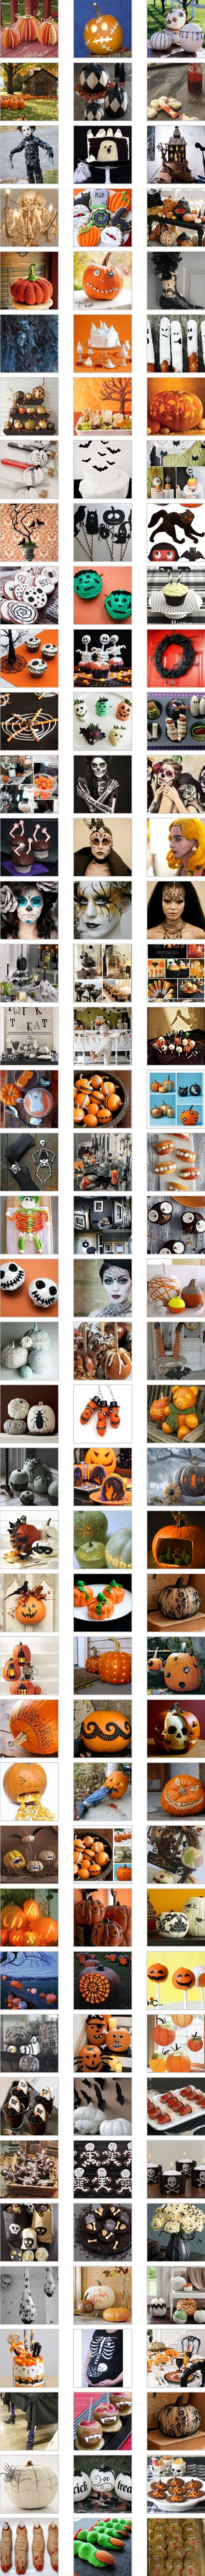 Halloween Ideas – Decorations, Party, Table, Food… http://findinspirations.com/2012/09/halloween-ideas-decorations-party-table-food/